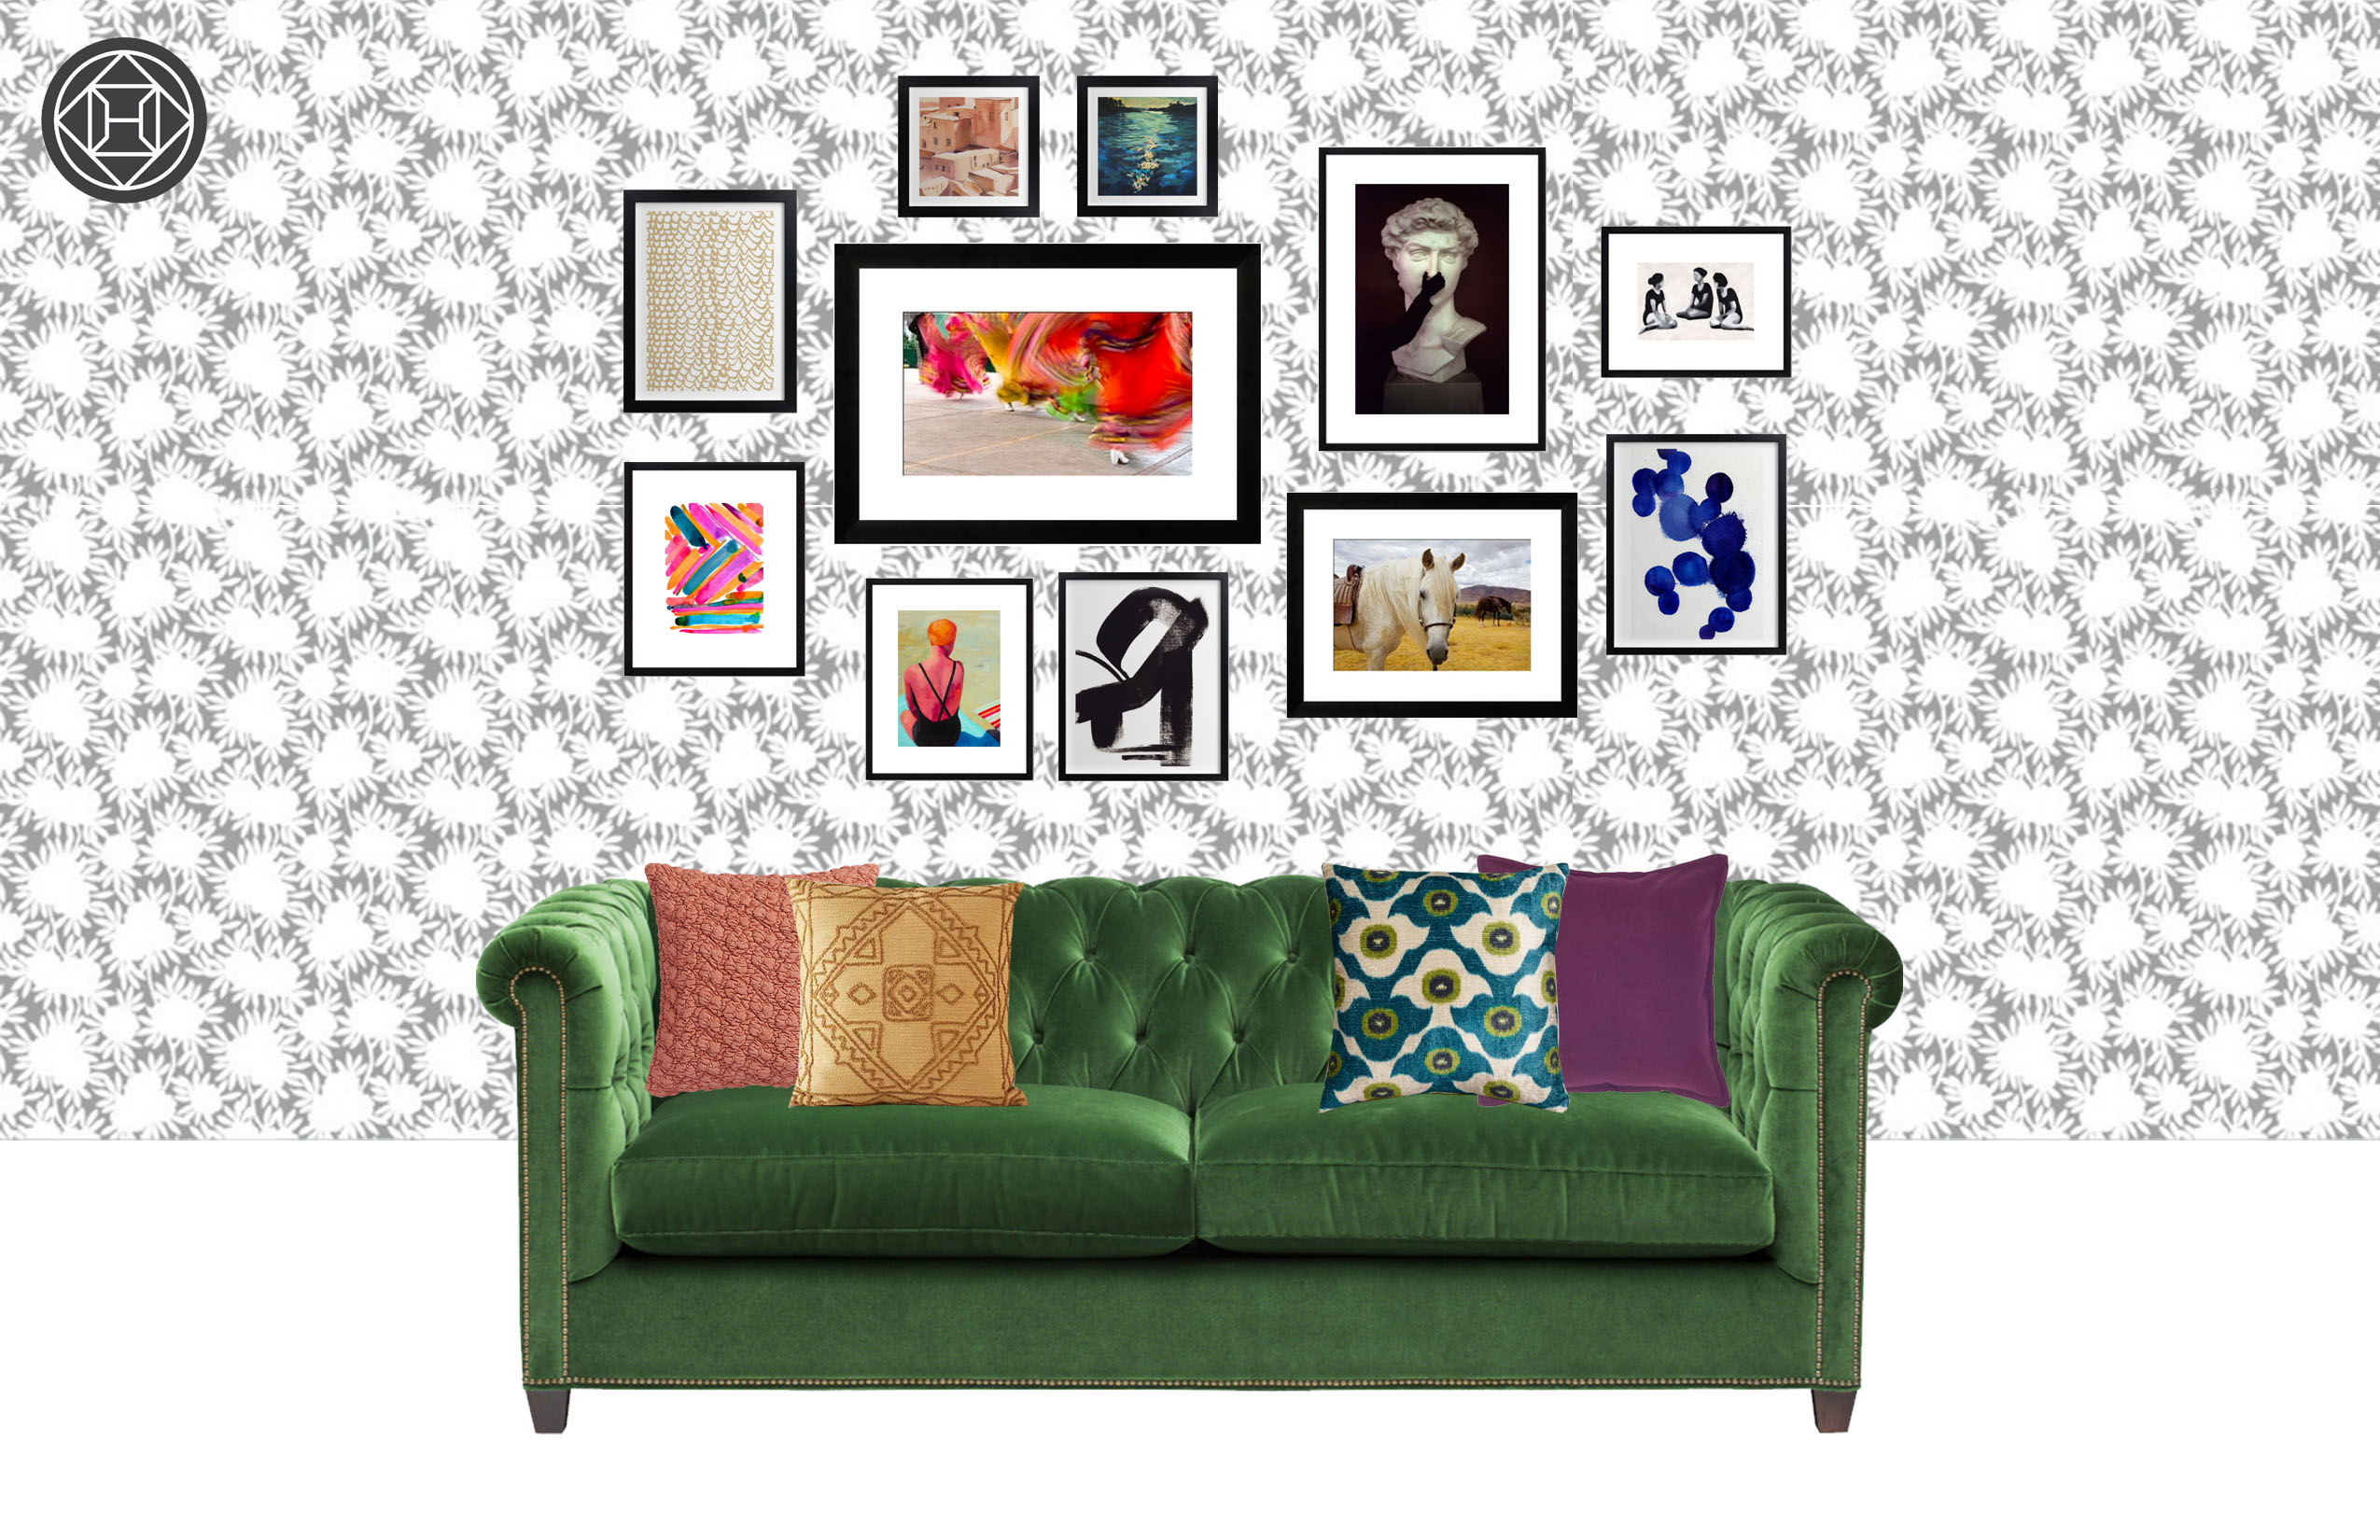 4 looks to inspire art hanging ideas